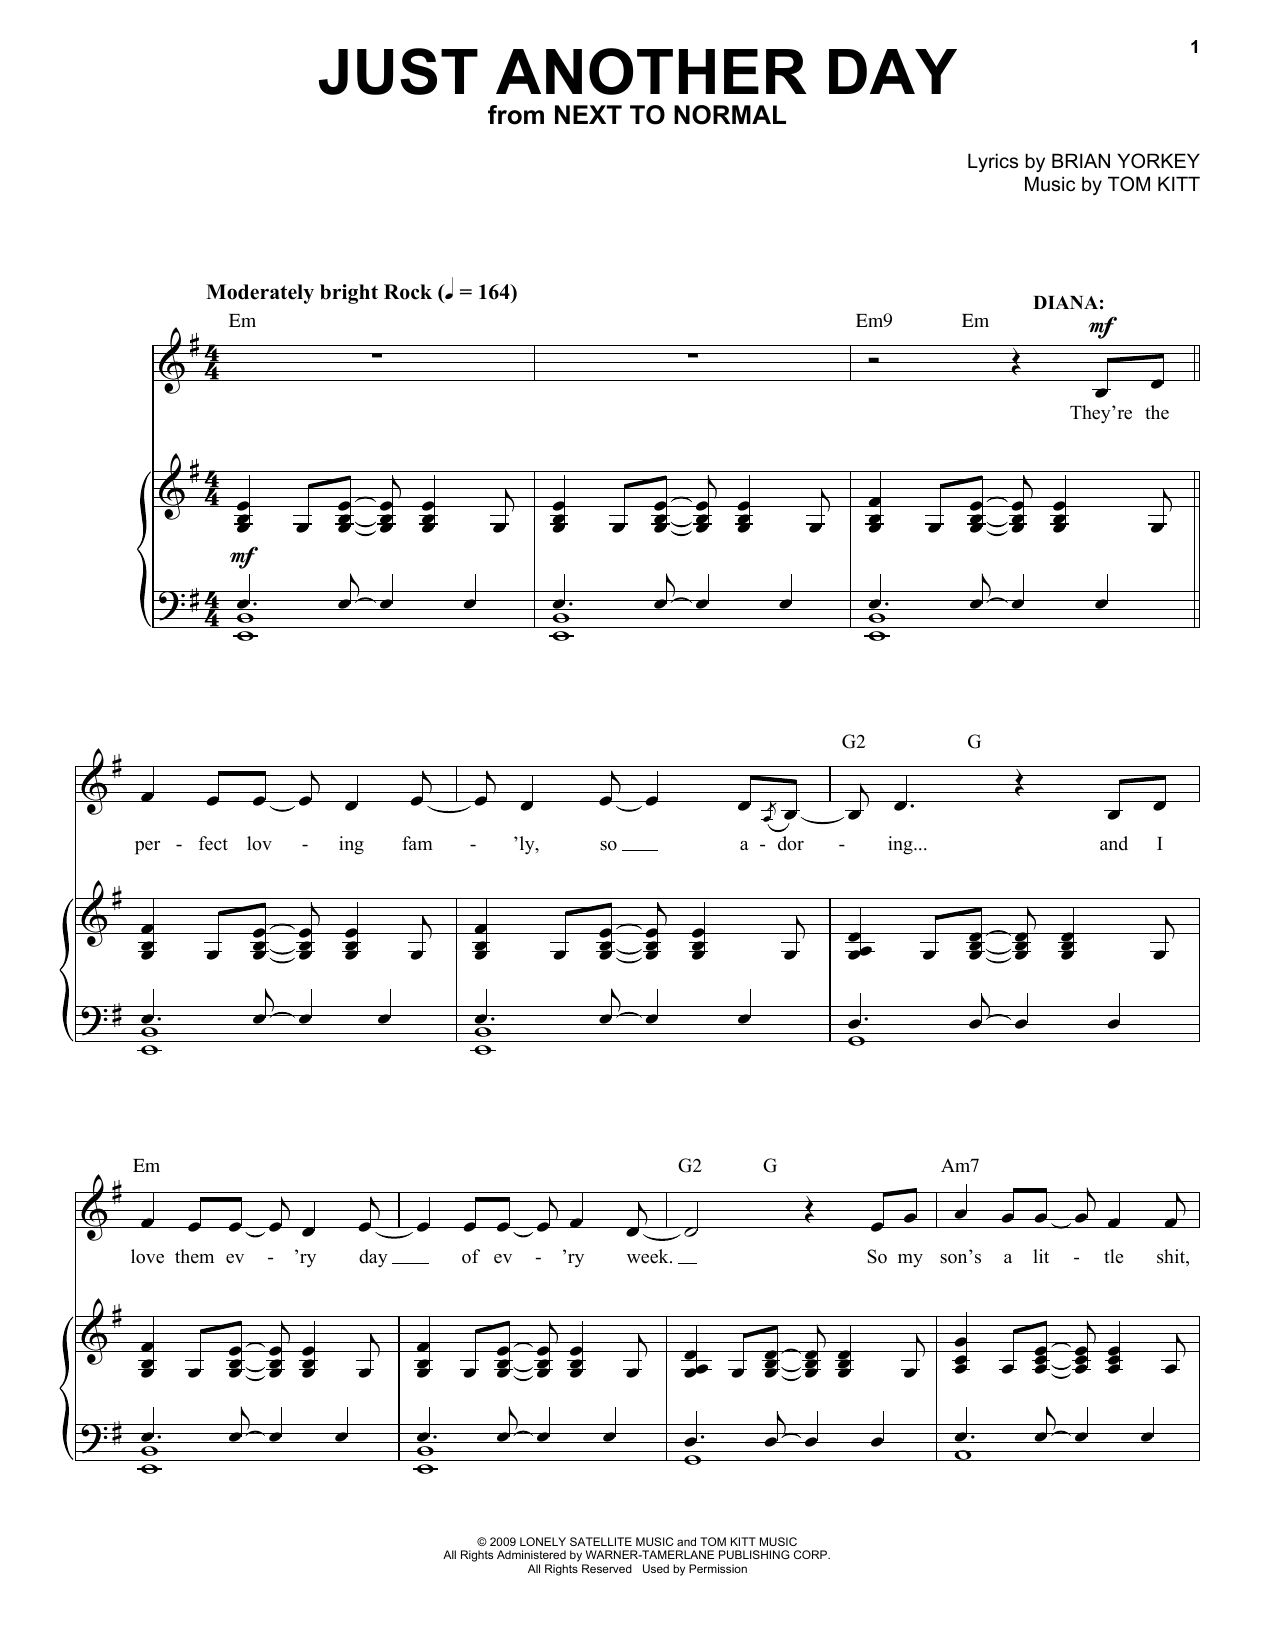 Next to Normal Cast Just Another Day (from Next to Normal) sheet music notes and chords. Download Printable PDF.